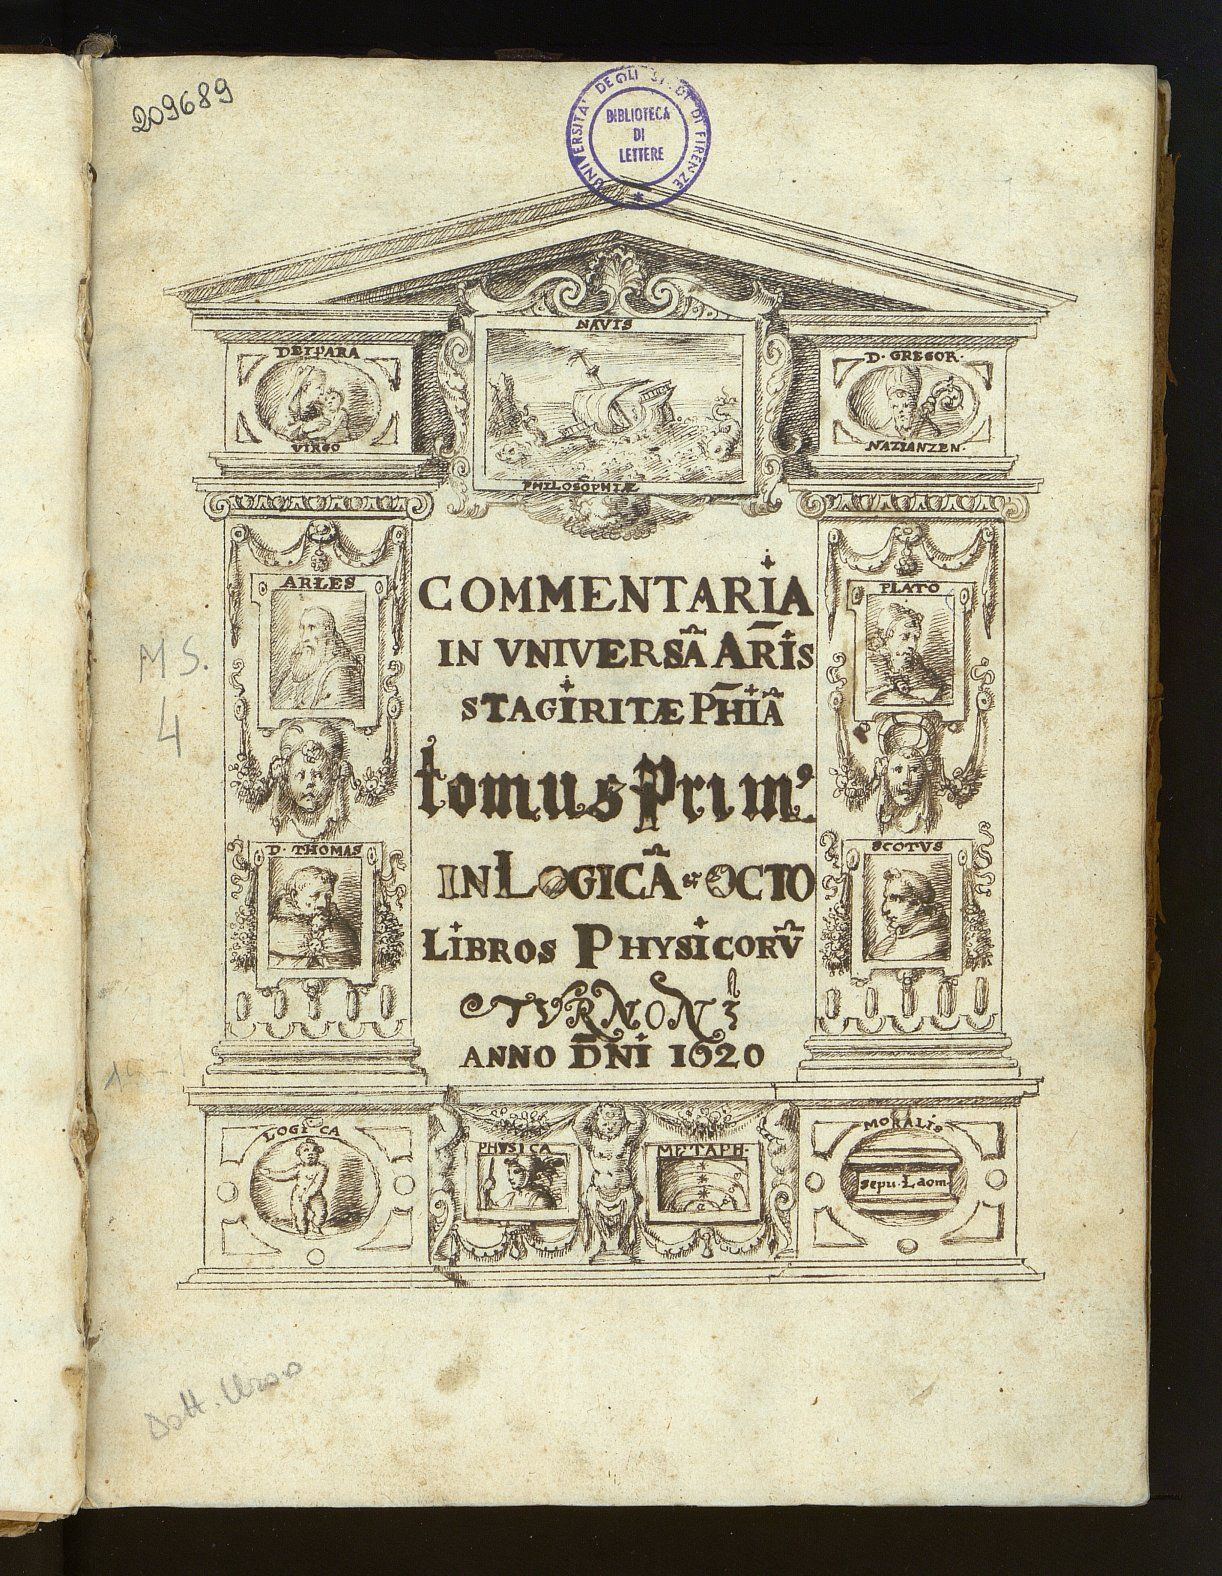 Aristoteles, Commentaria in universam philosophiam, carta [1] recto